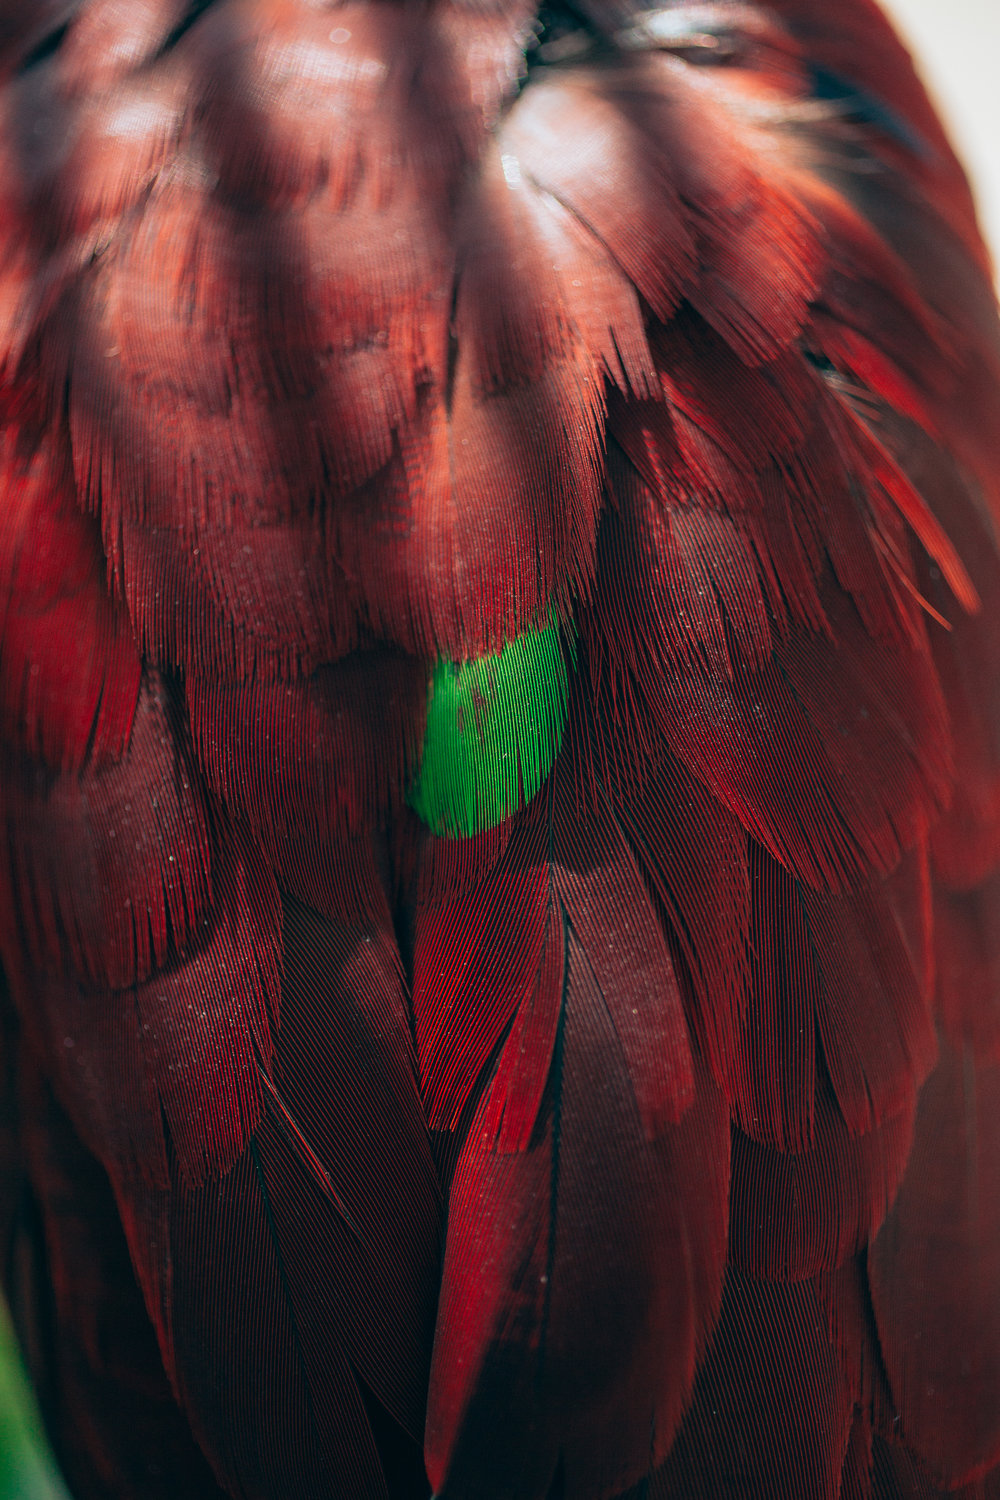 Mele- Beautiful and the dammed - When I was 7 we got mele a Solomon Island Parrot and my whole life she has been there. I was gifted her recently. She developed some nerve damage in her old age, and its made her a little nervous. and so she plucks her feathers. When I took her over I thought I can fix her! In life their are many different teachers. What male has taught me is not everything can be fixed… All you can do is love and nurture the beauty lies within.